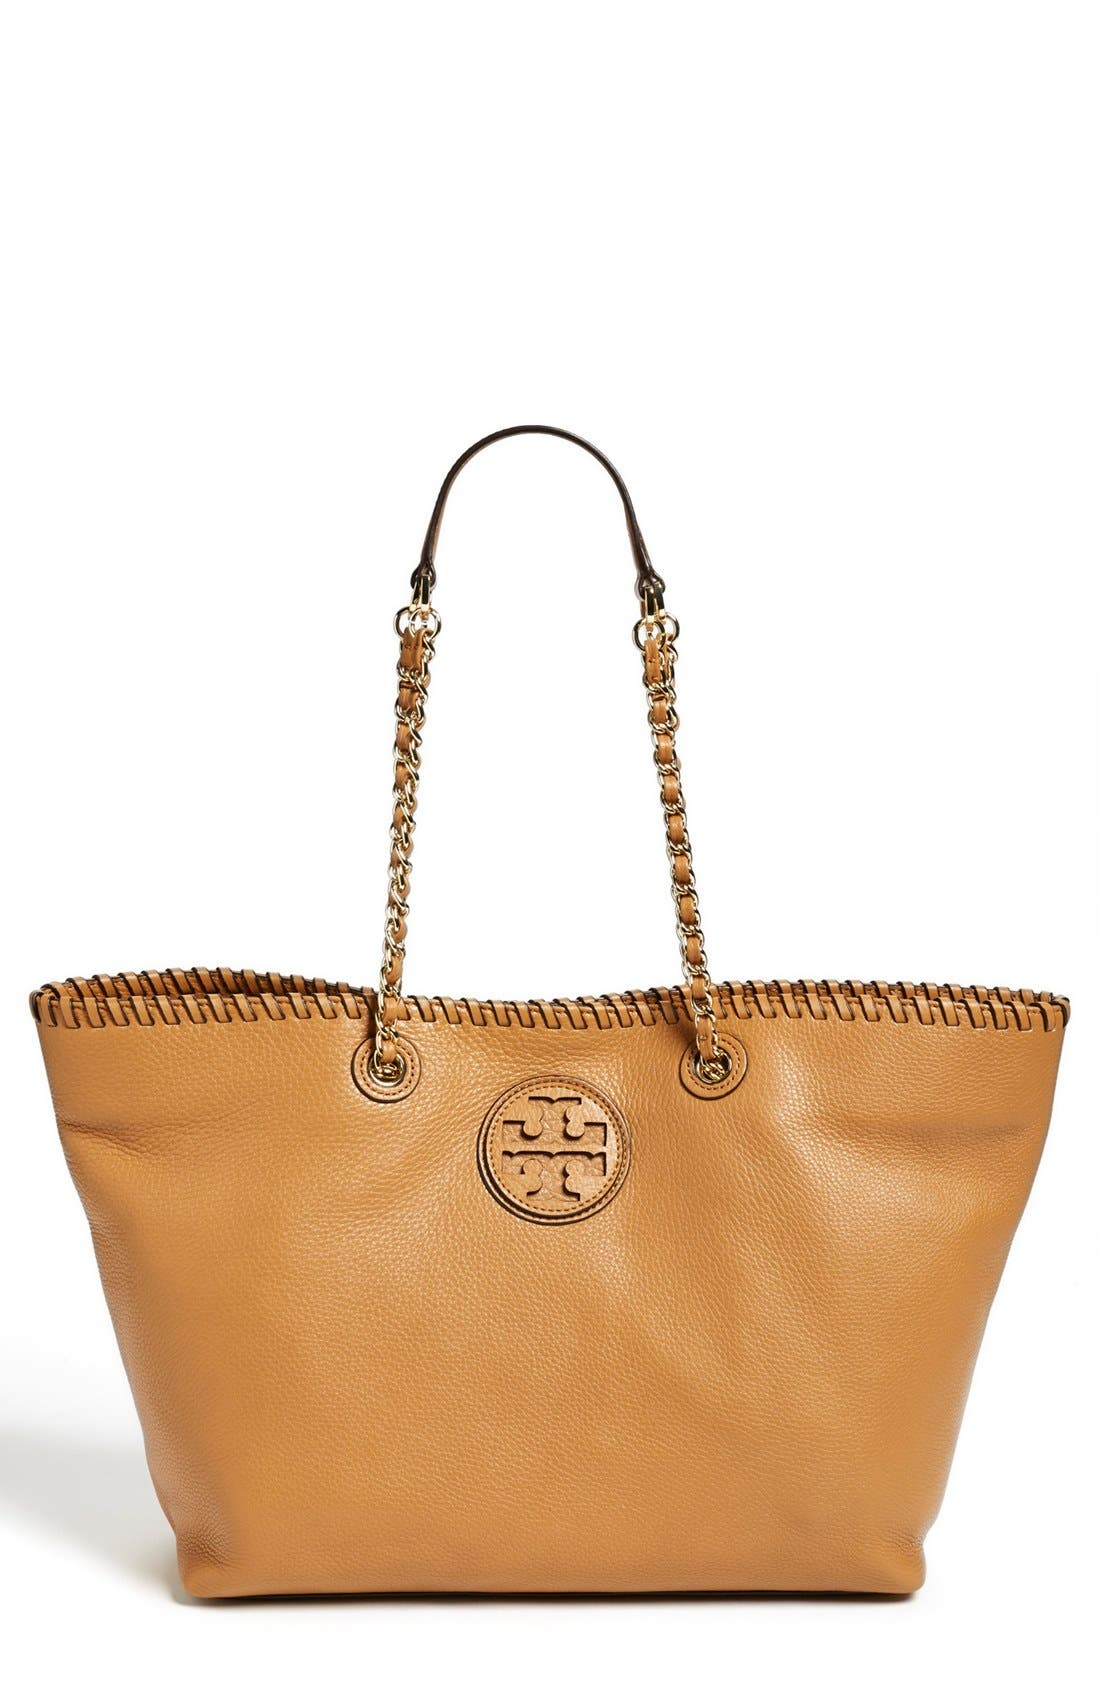 Alternate Image 1 Selected - Tory Burch 'Small Marion' Tote